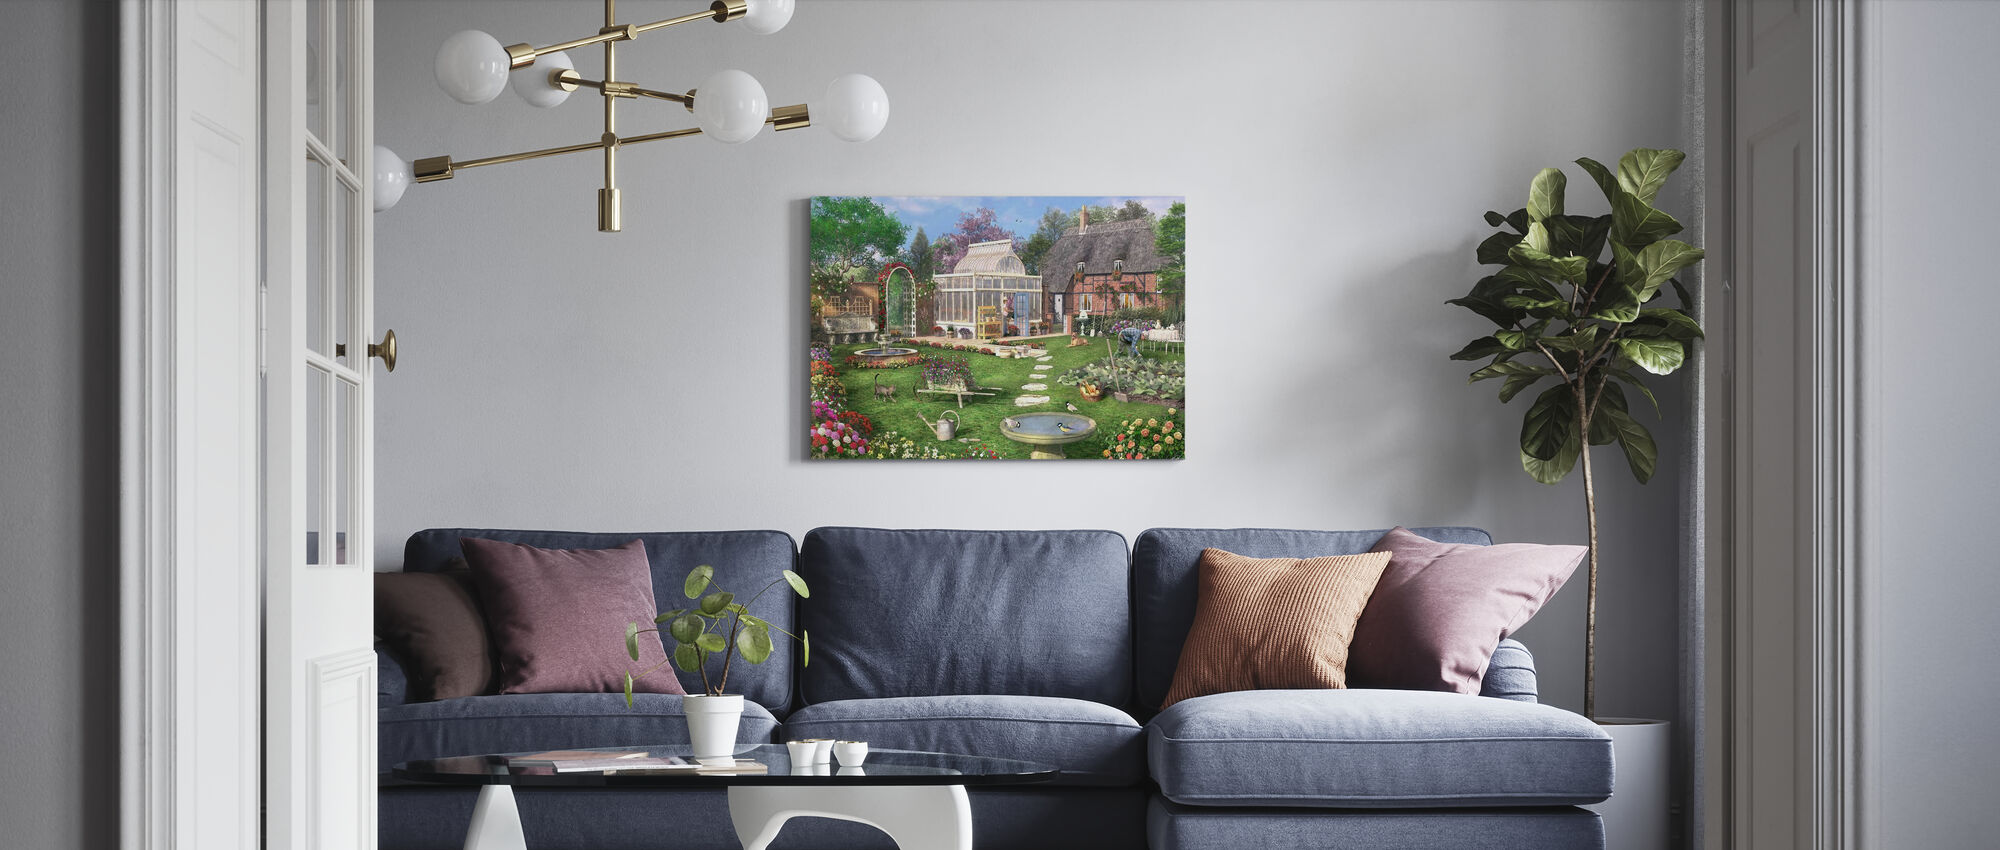 The Cottage Garden - Canvas print - Living Room